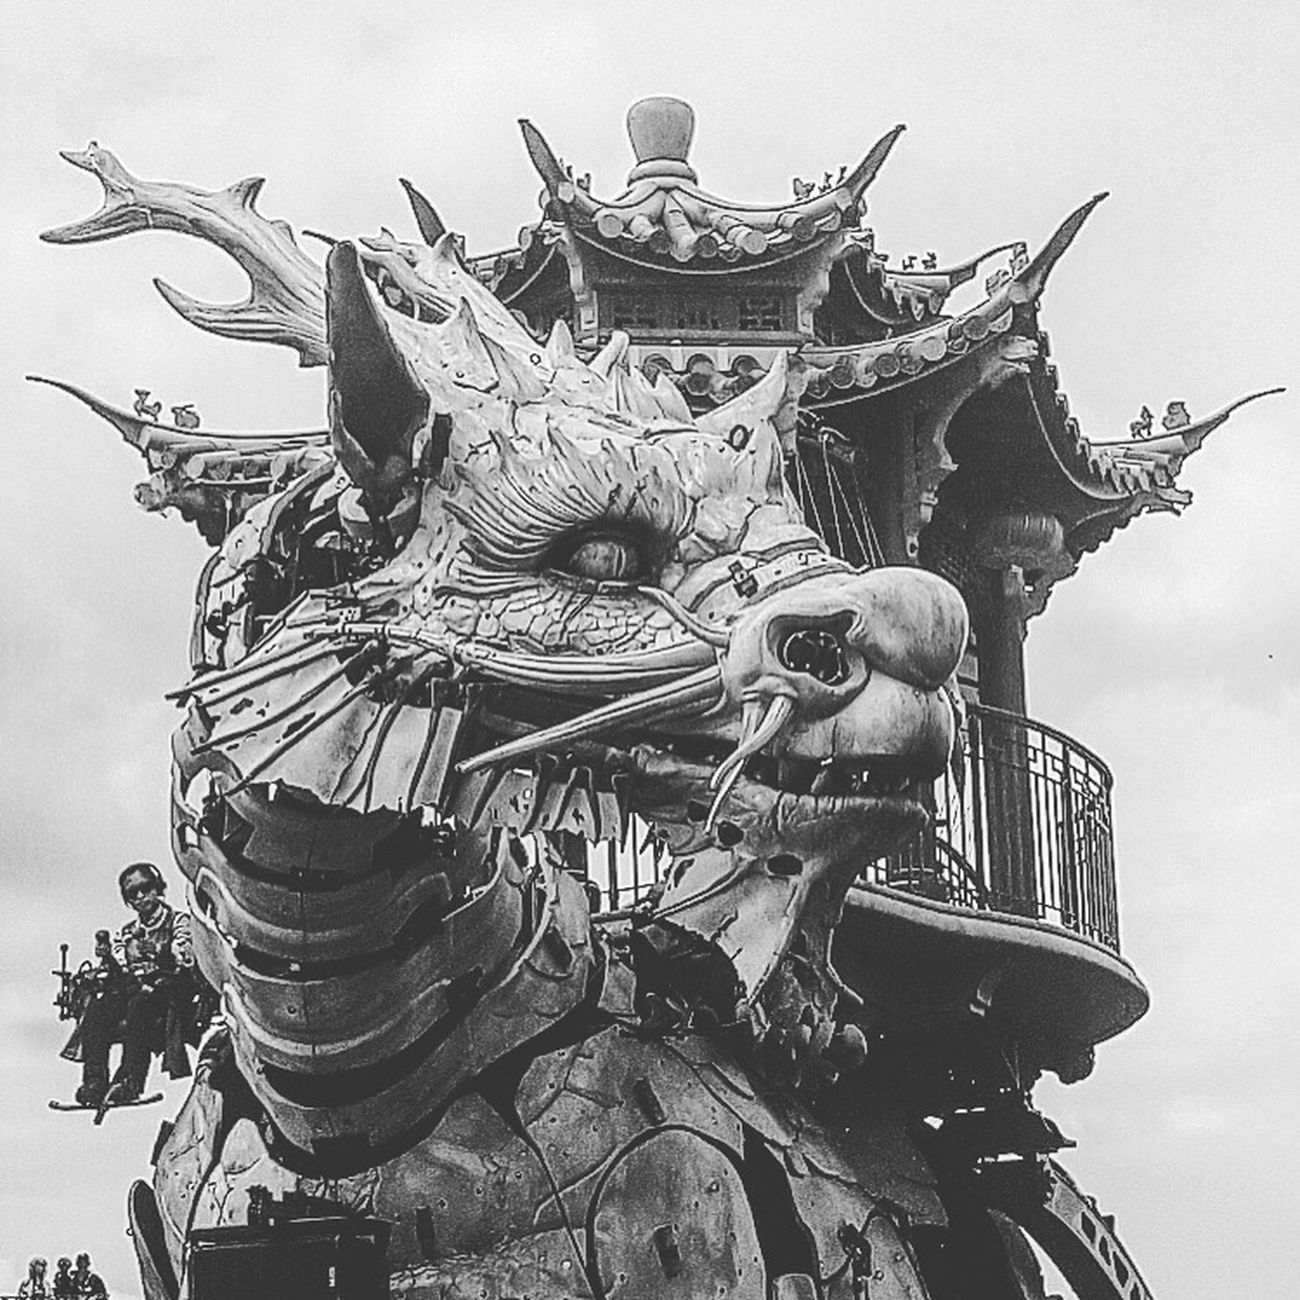 Dragon Nantes Machinesdelile